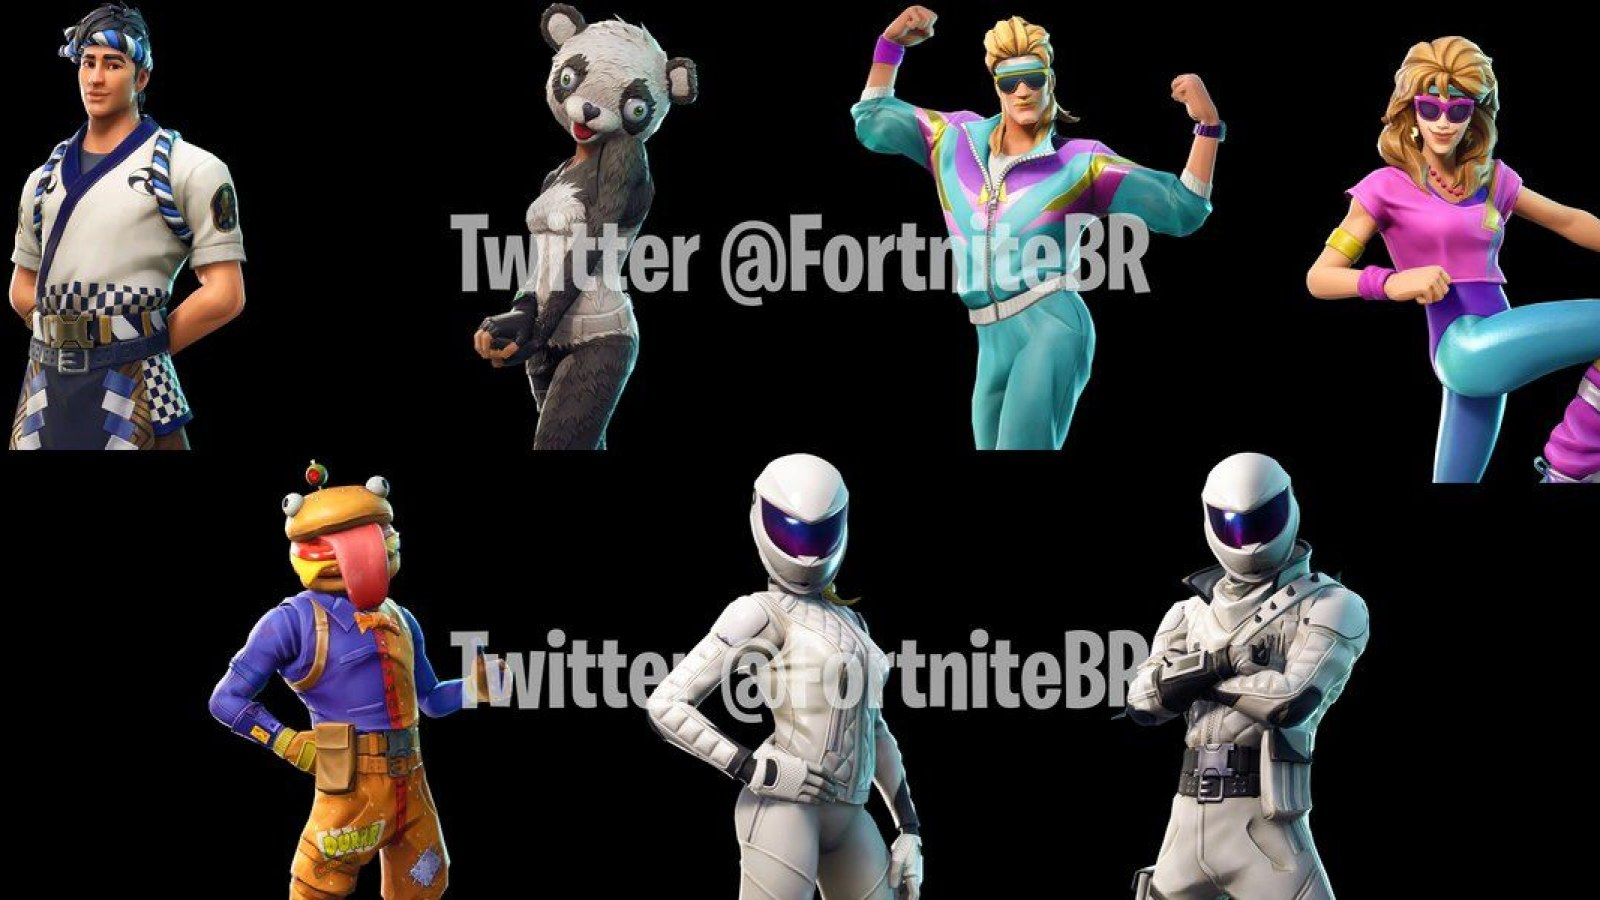 Fortnite 5 20 Leaked Skins And Weapons Break Barrel Shotgun Celestial Fuzzy Panda Bear And More Update A free multiplayer game where you compete in battle royale, collaborate to create your private. fortnite 5 20 leaked skins and weapons